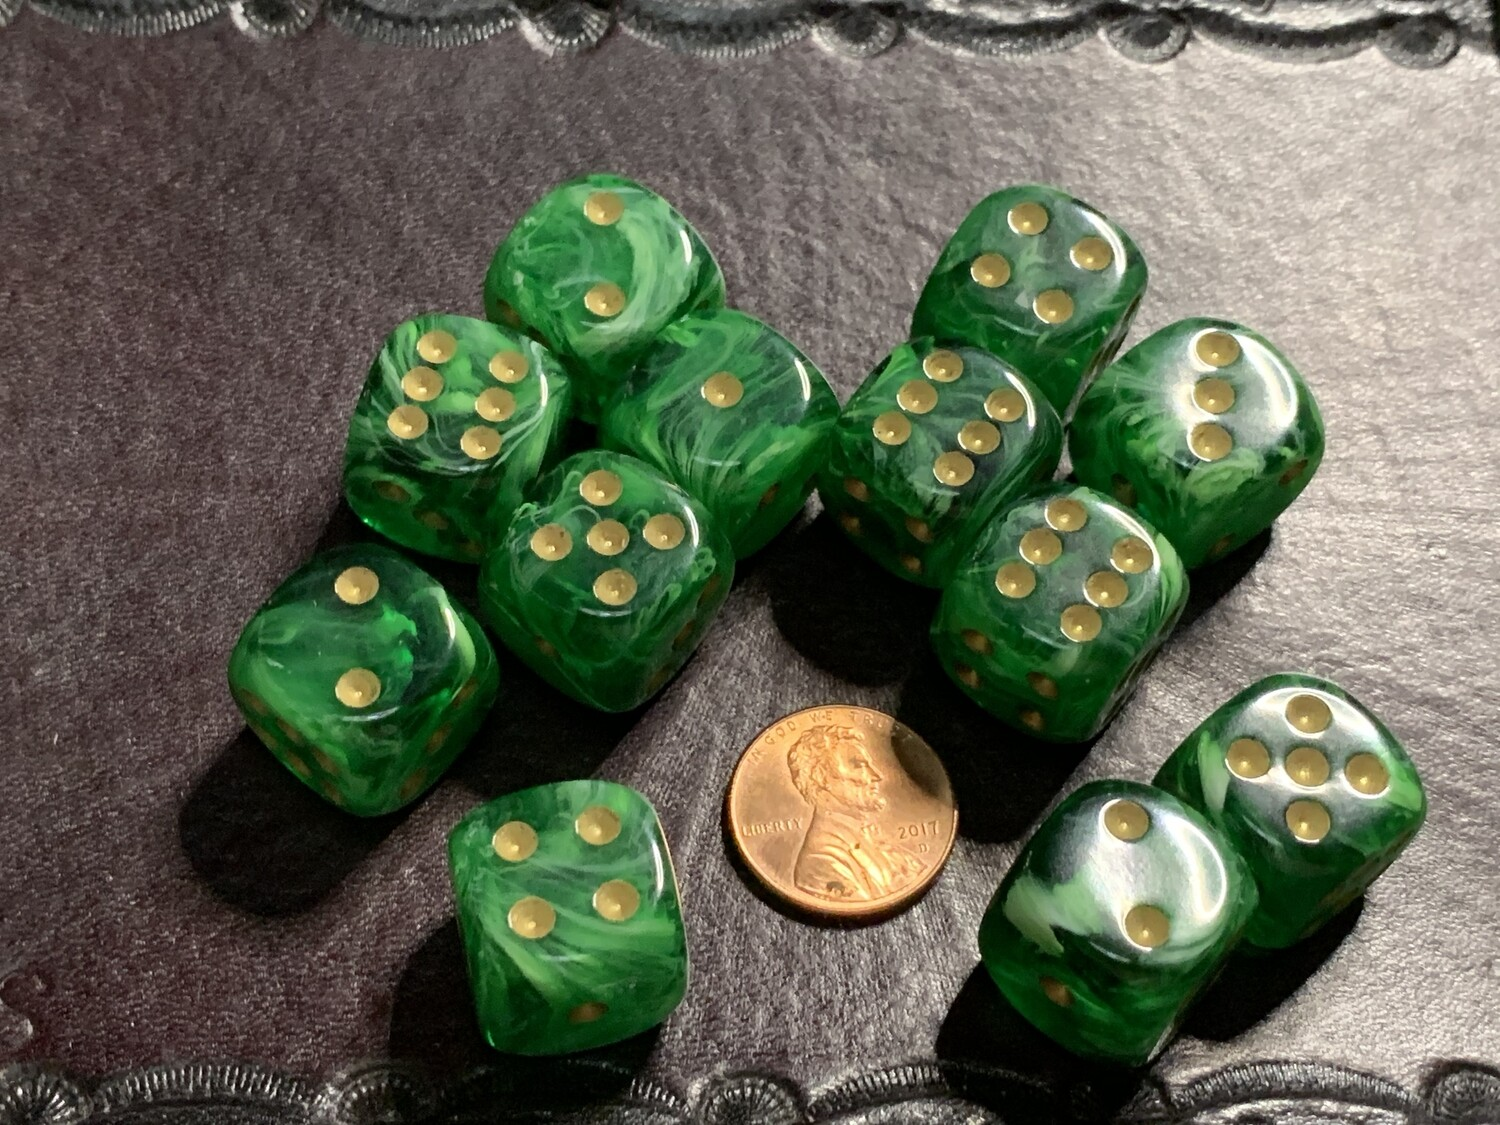 Chessex 16mm 12D6 Block - Vortex Green with Gold Dice Set Tabletop Gaming RPG